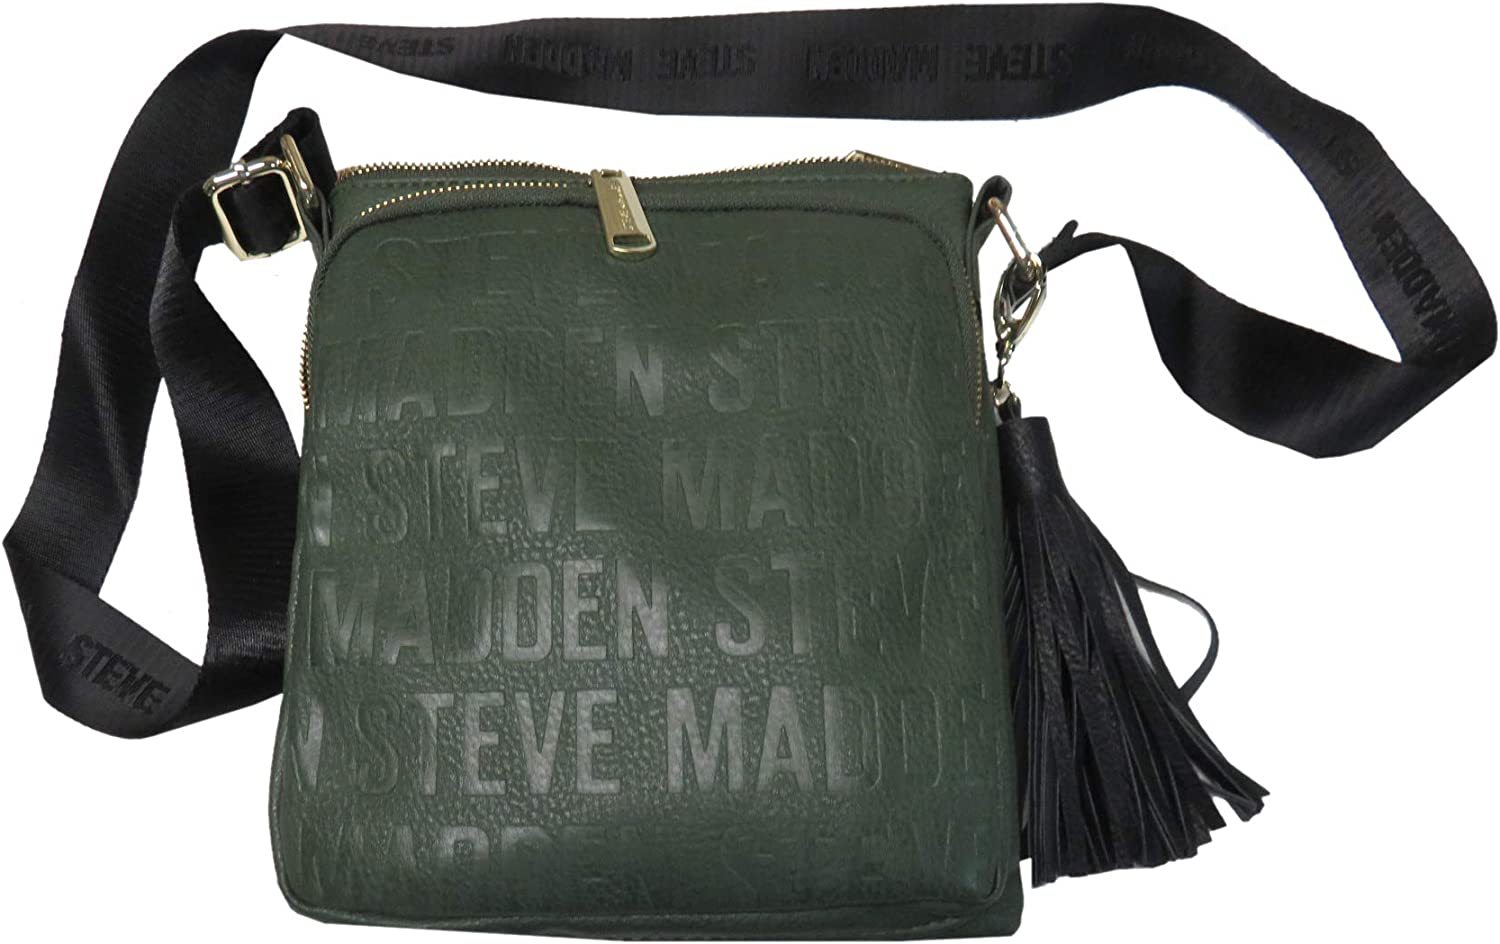 Steve Madden Women's Purse Handbag BGlam Crossbody Olive